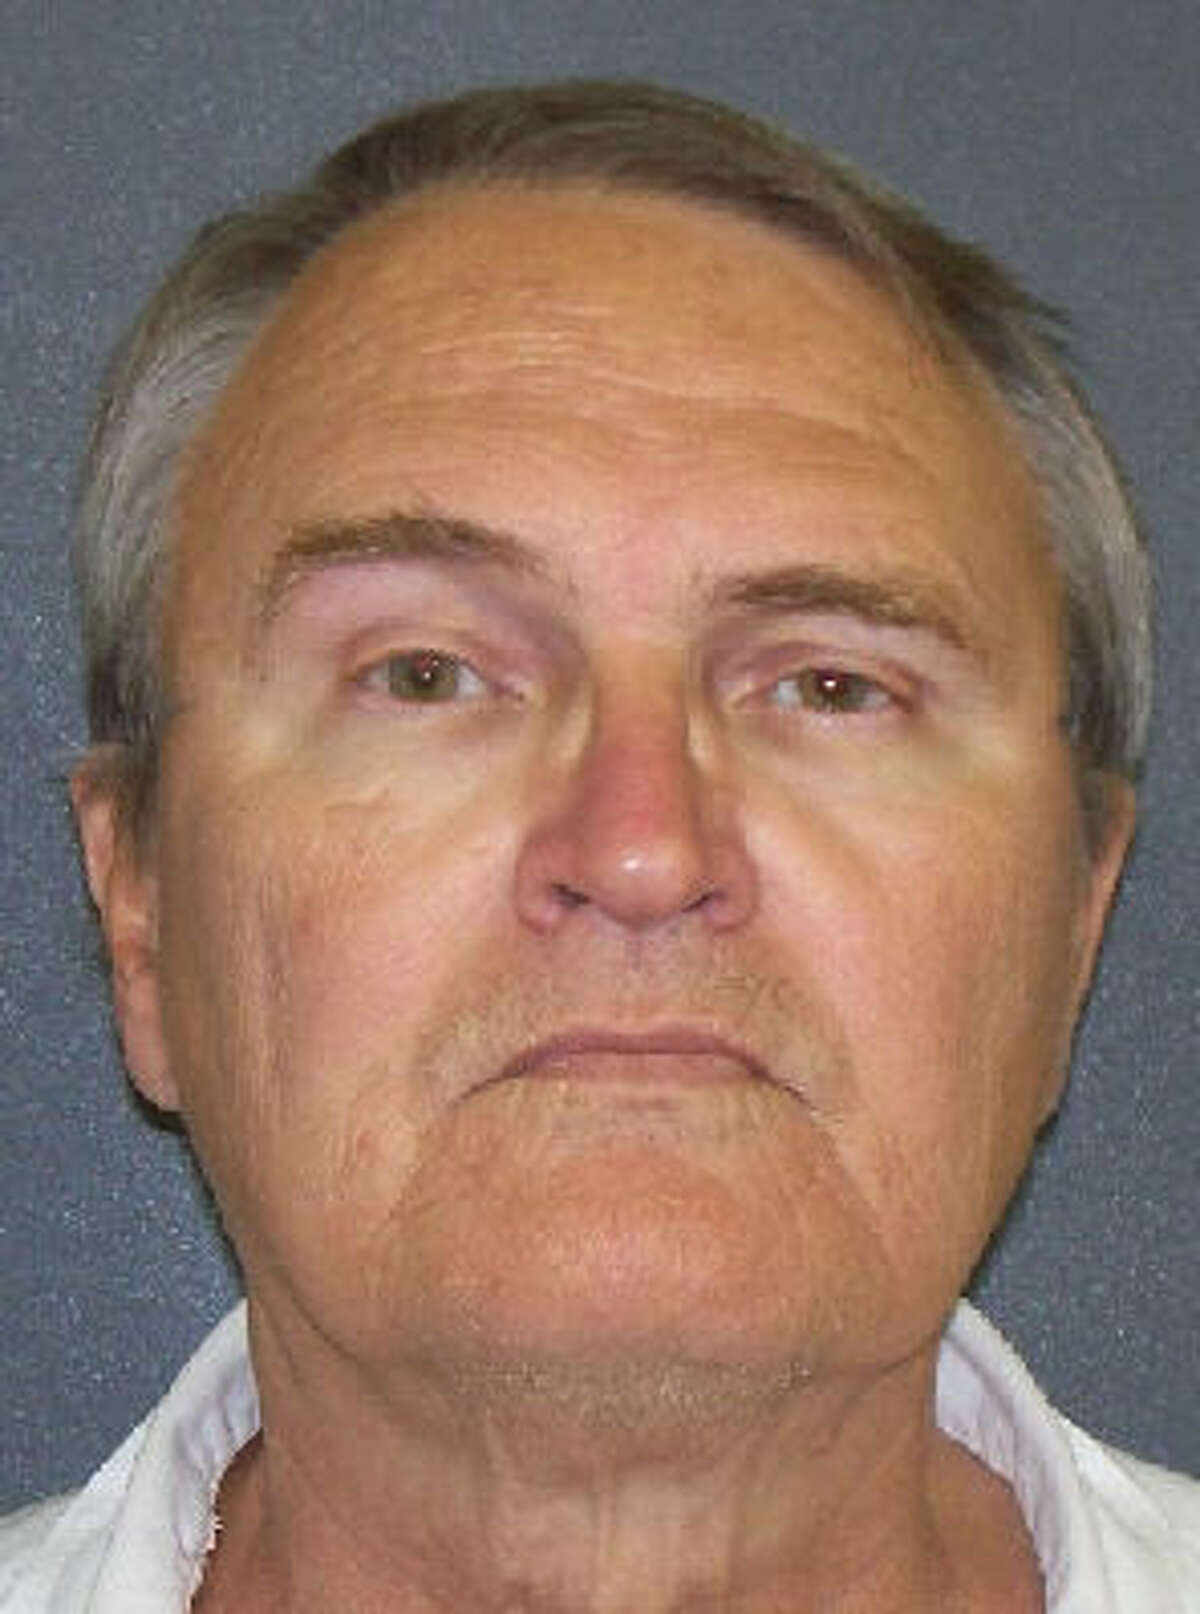 David Owen Brooks, was one of Dean Corll's accomplices in what became known as the Houston Mass Murders of 1970-73. Texas officials in December 2014 began reviewing his case for possible parole.